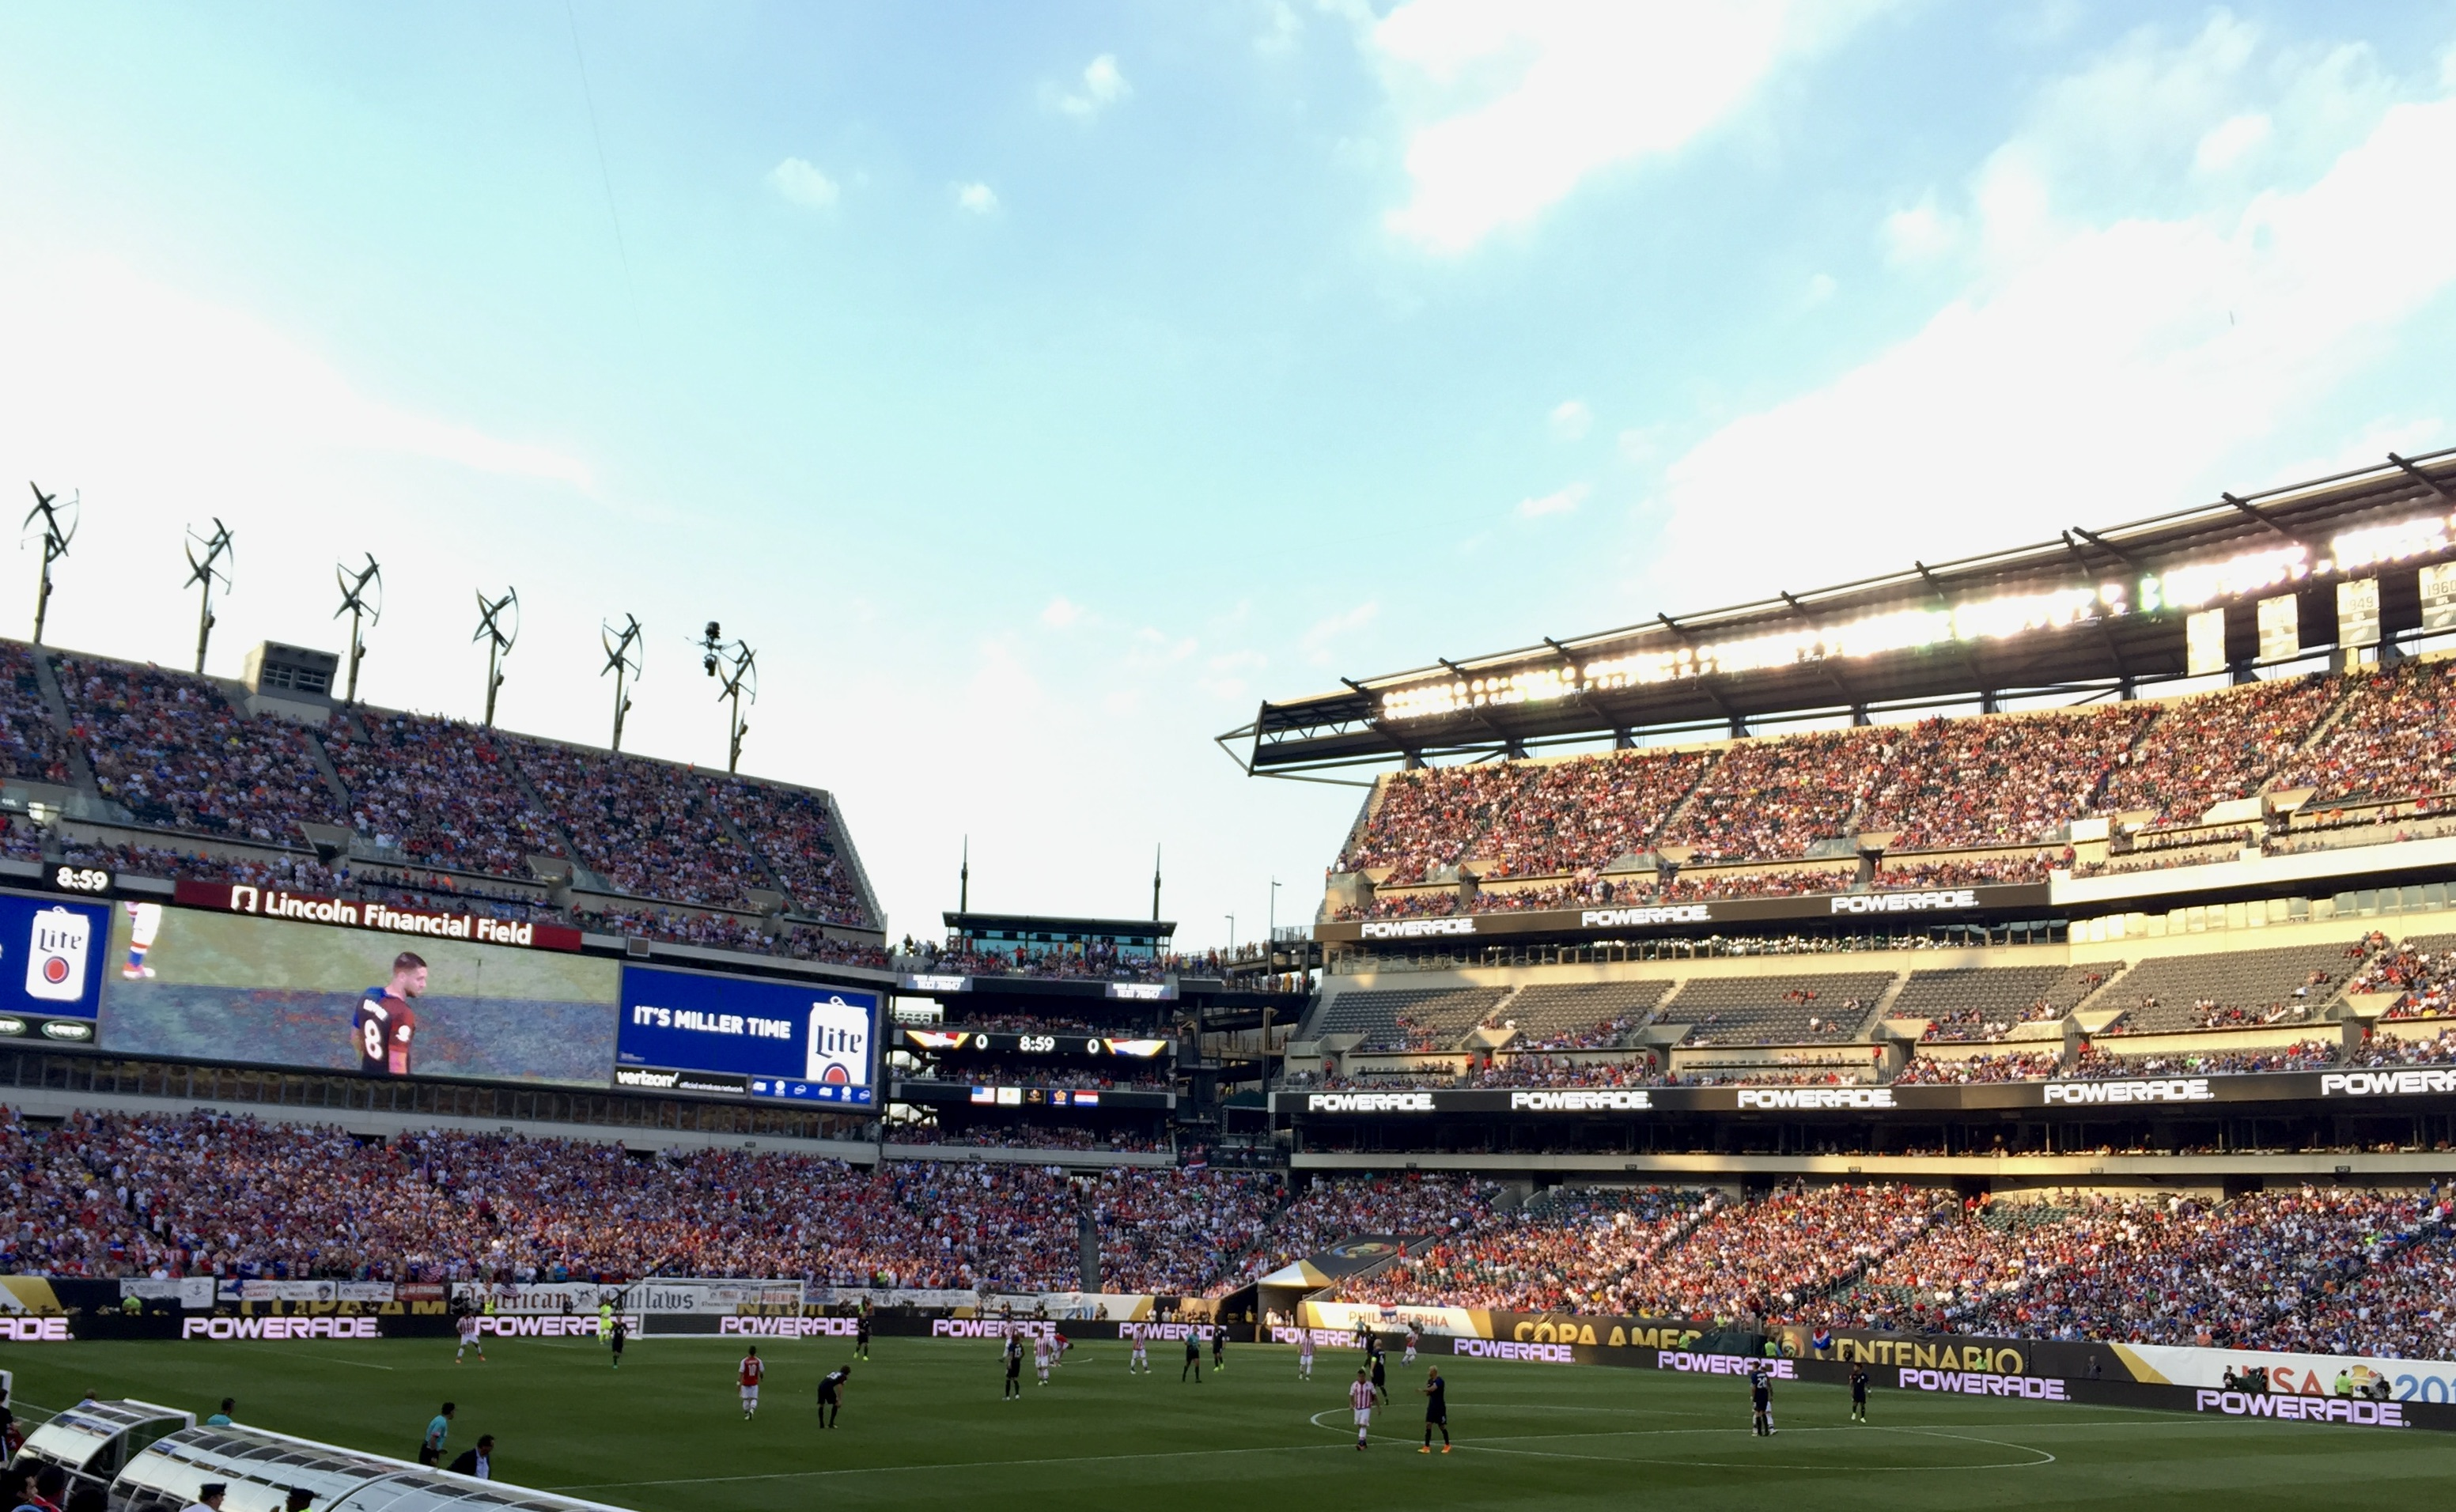 Lincoln Financial Field in South Philly